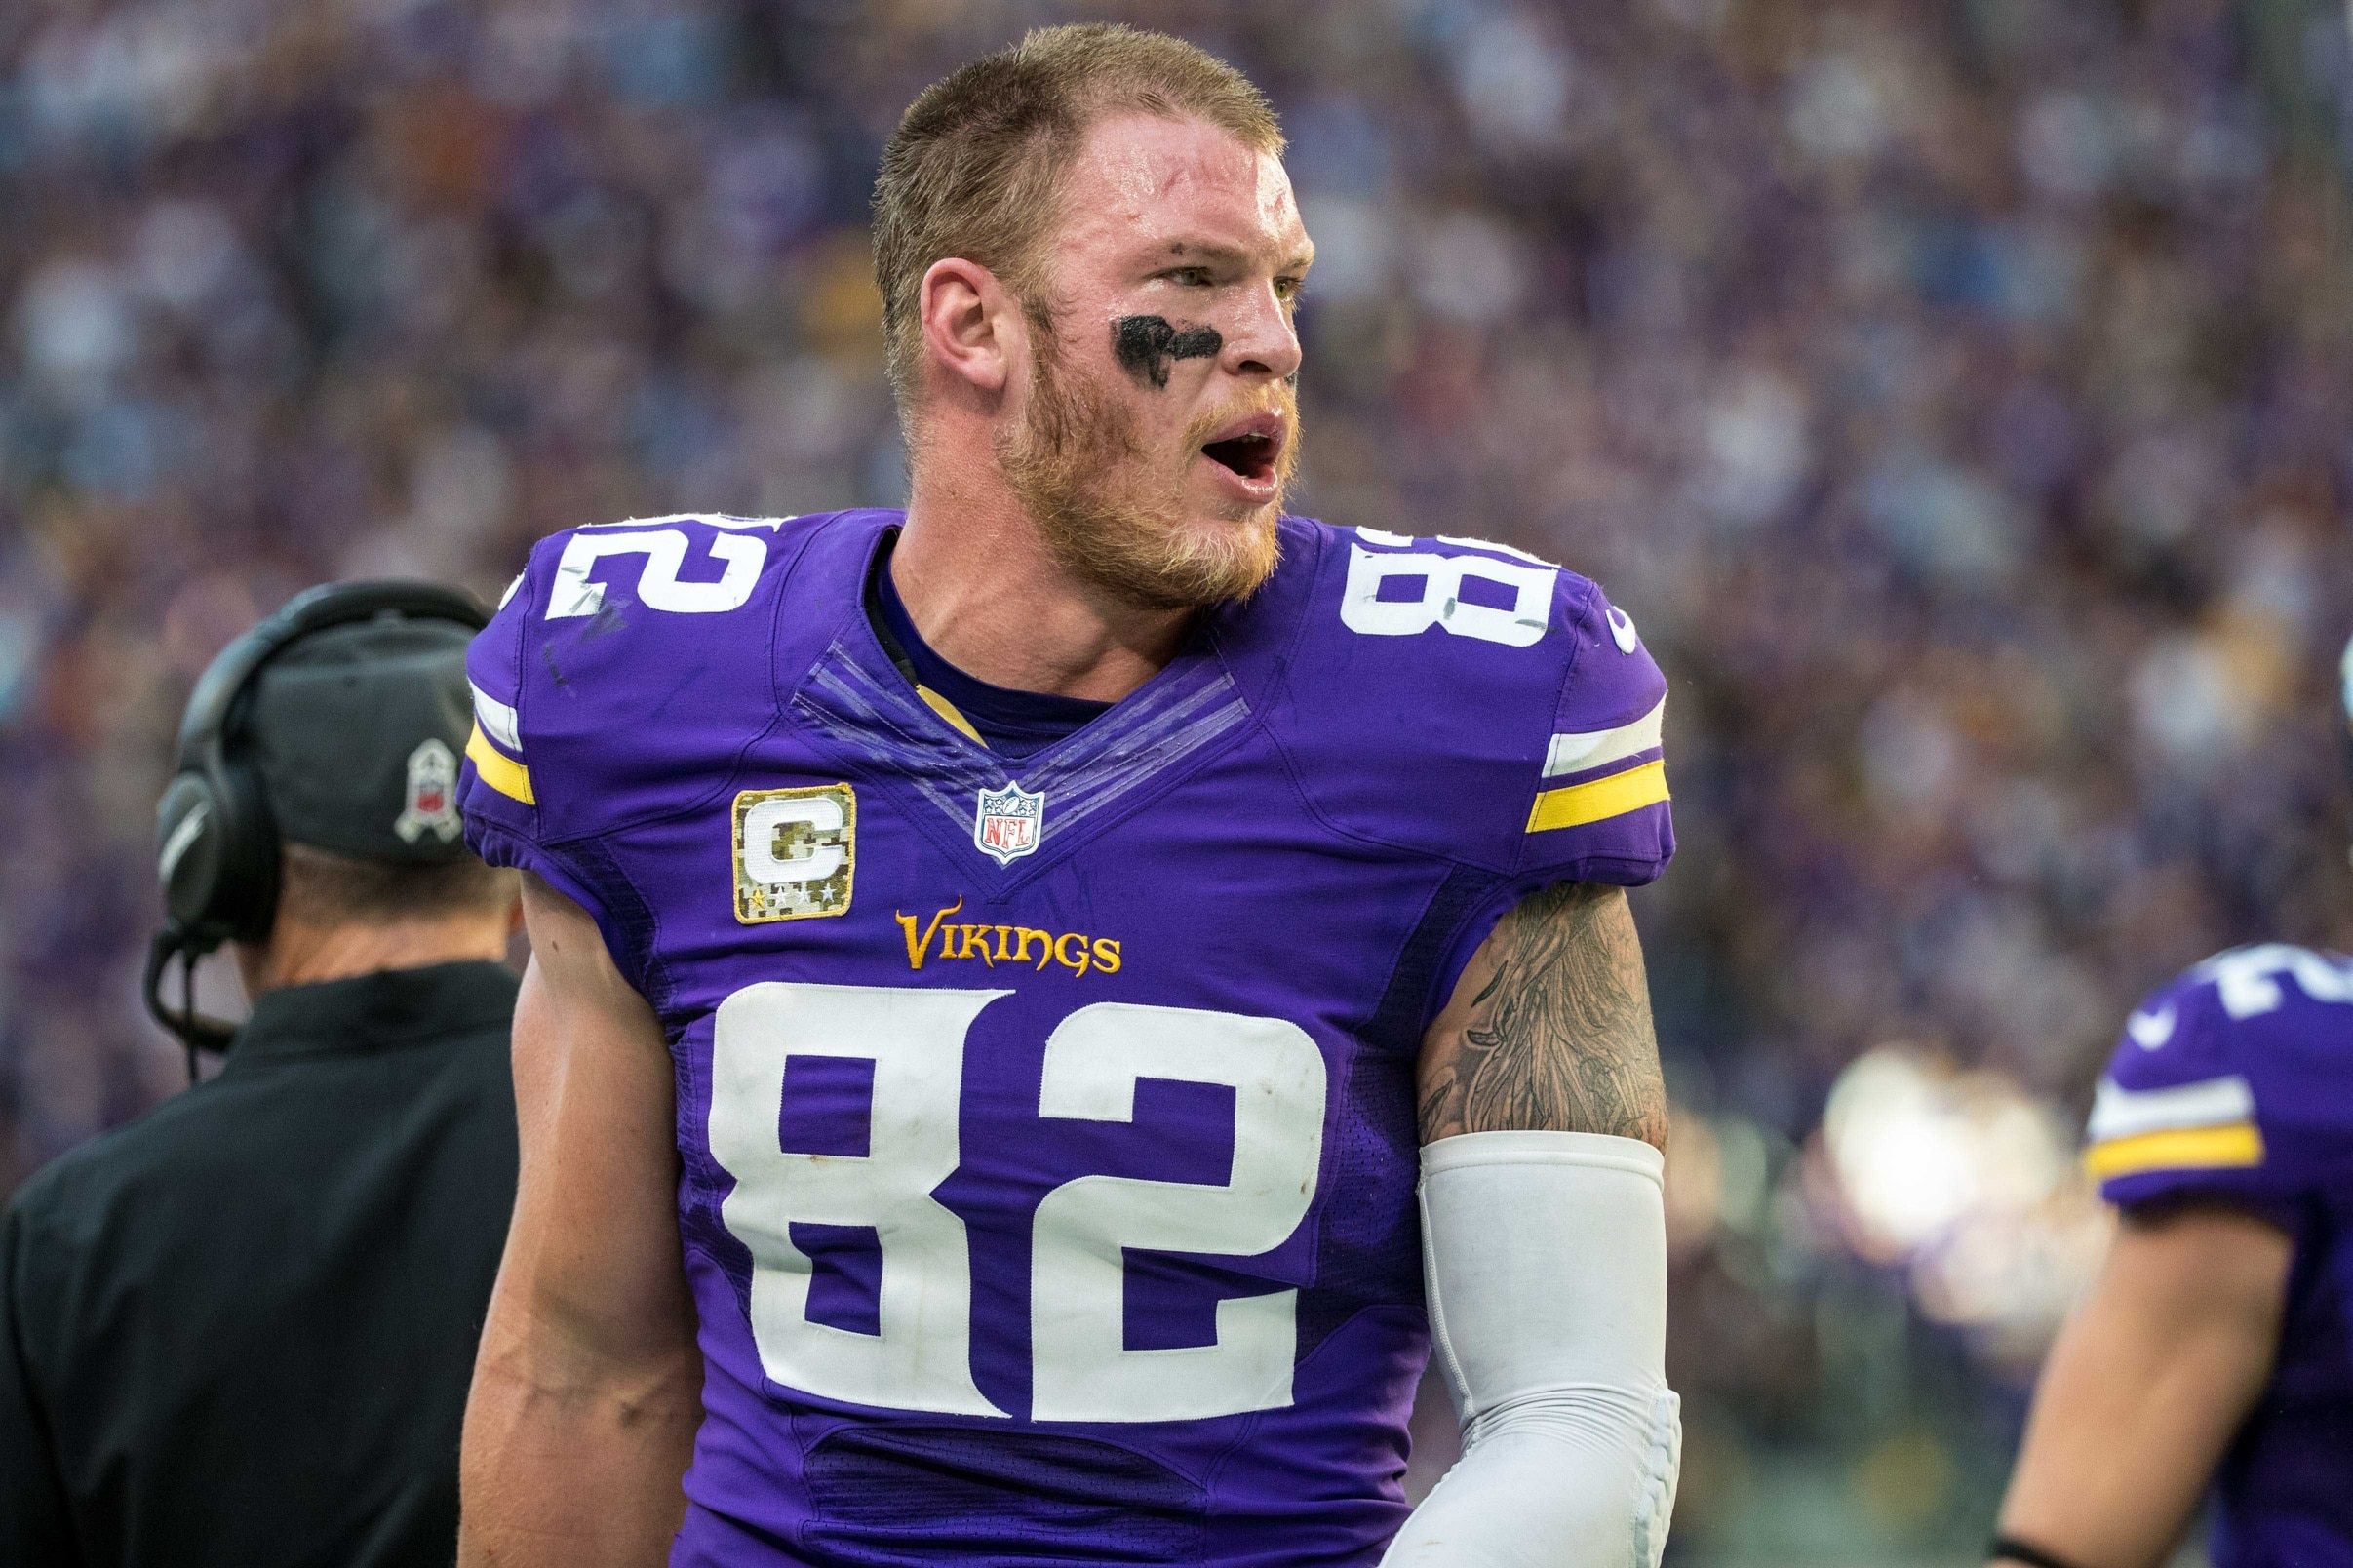 Watch Kyle Rudolph Pulls Off Spectacular One Handed